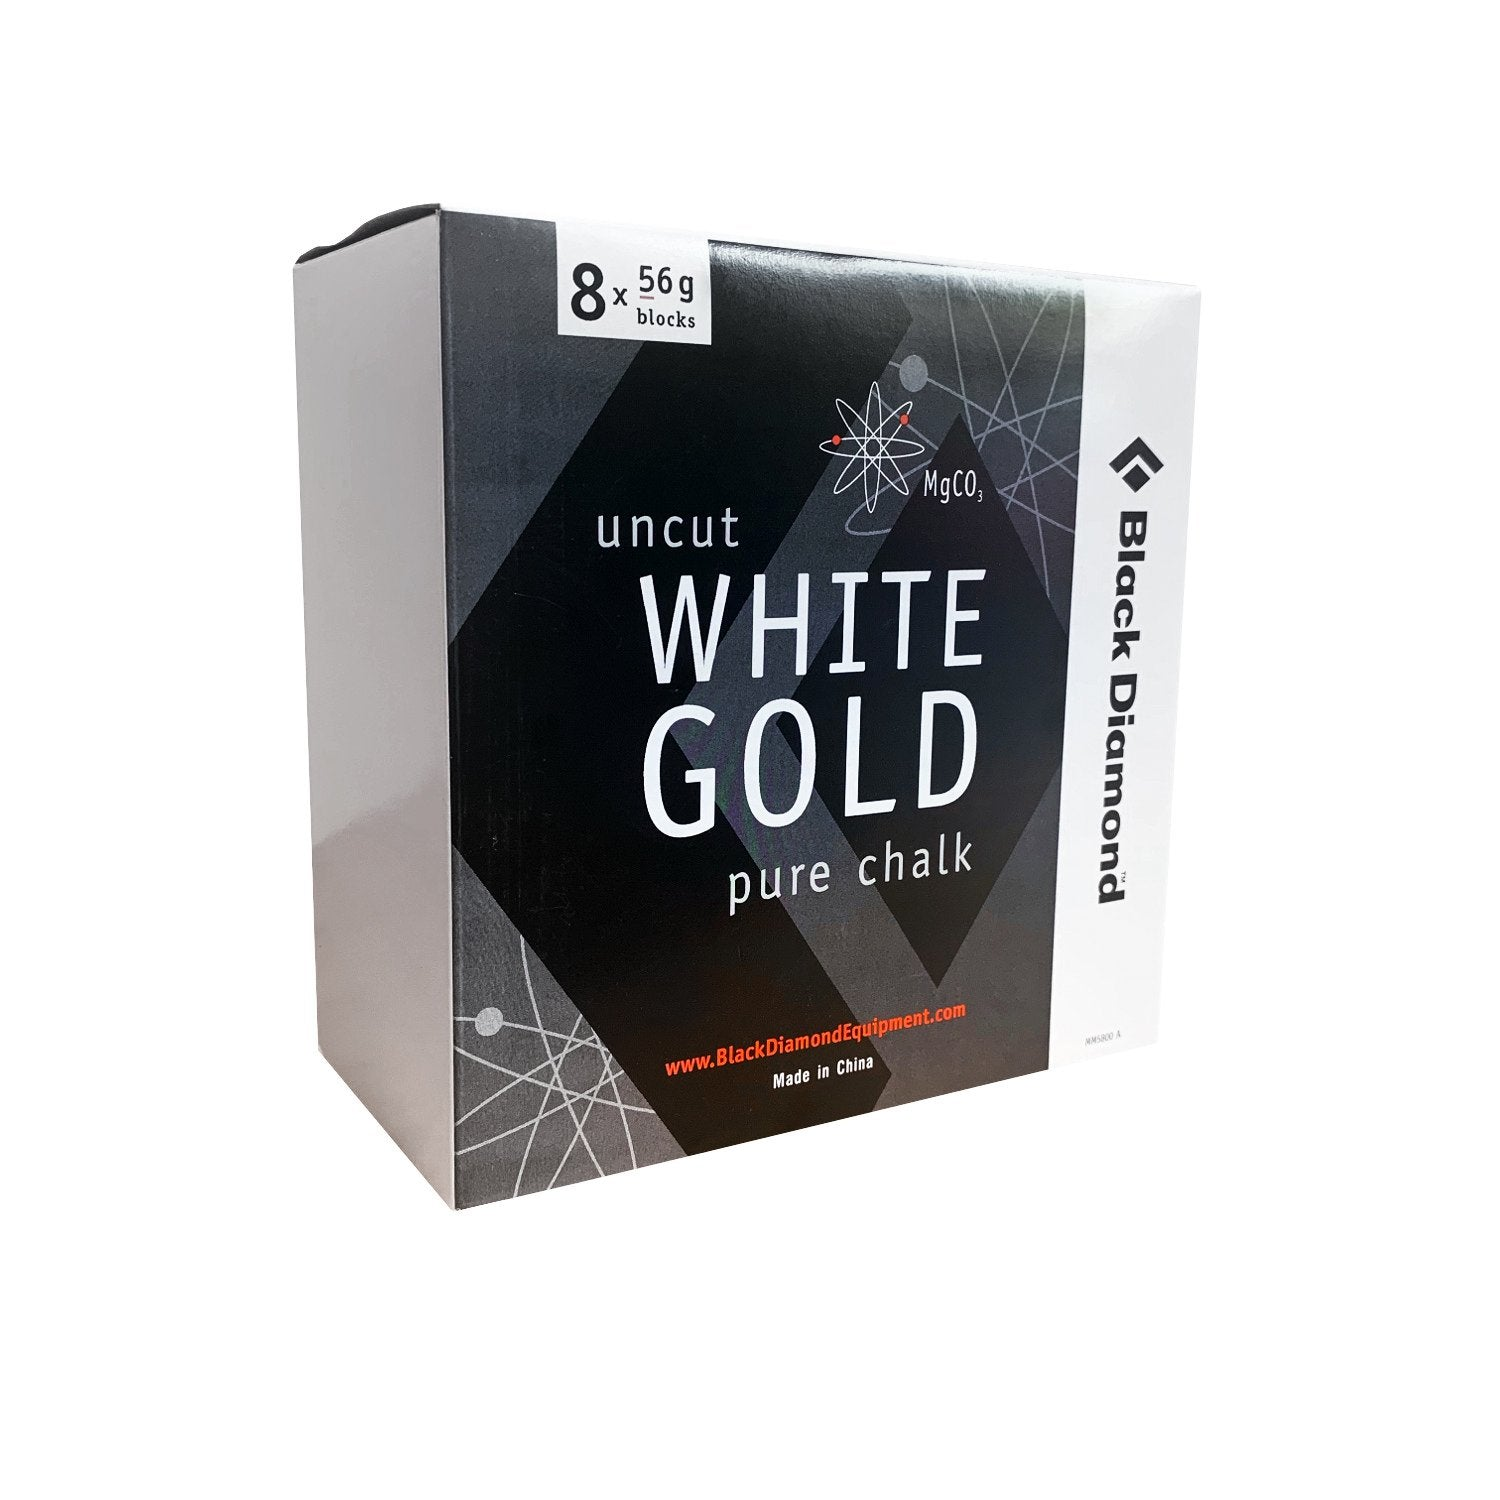 Black Diamond White Gold Pure Chalk x 8 Blocks